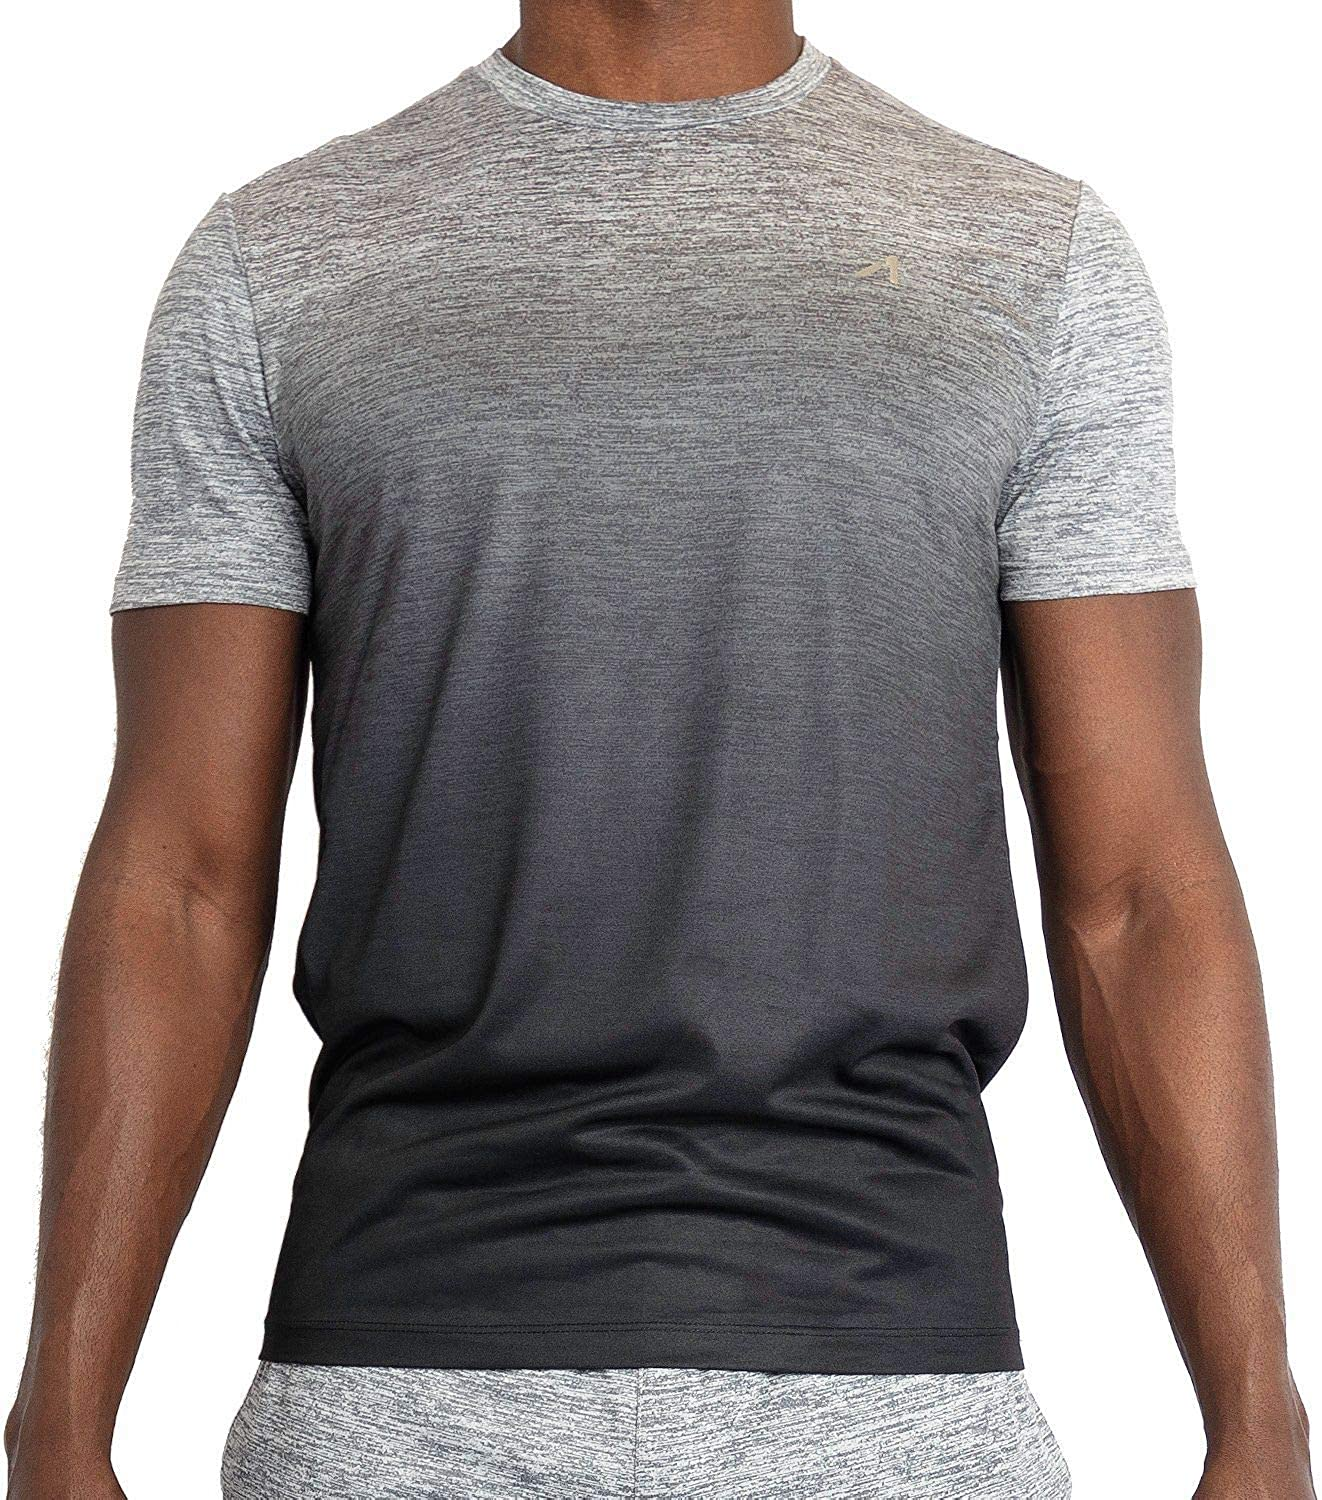 Alive Men's Tee Shirt Quick Dry Active Performance Short Sleeve Shirt